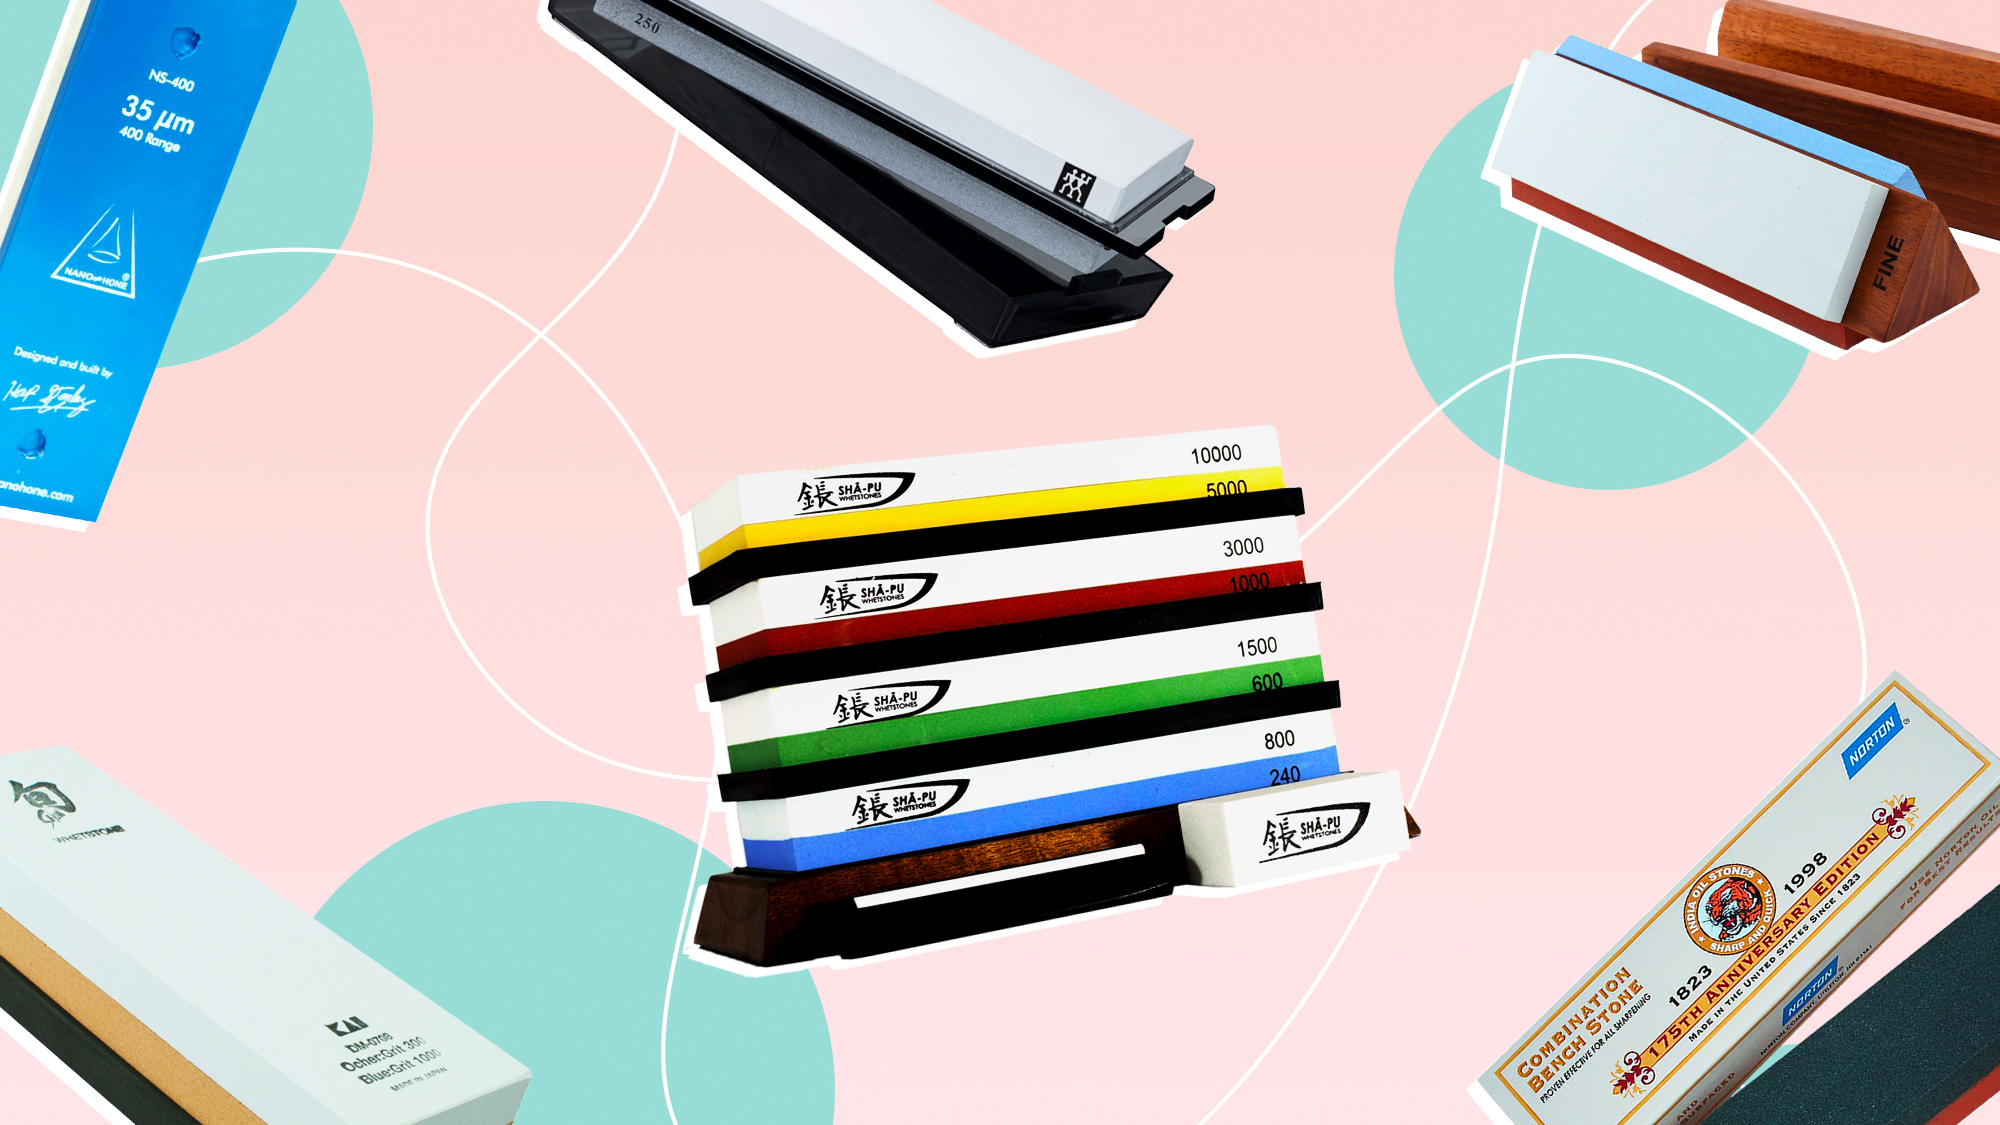 Sharpening stones from a variety of companies on a designed background